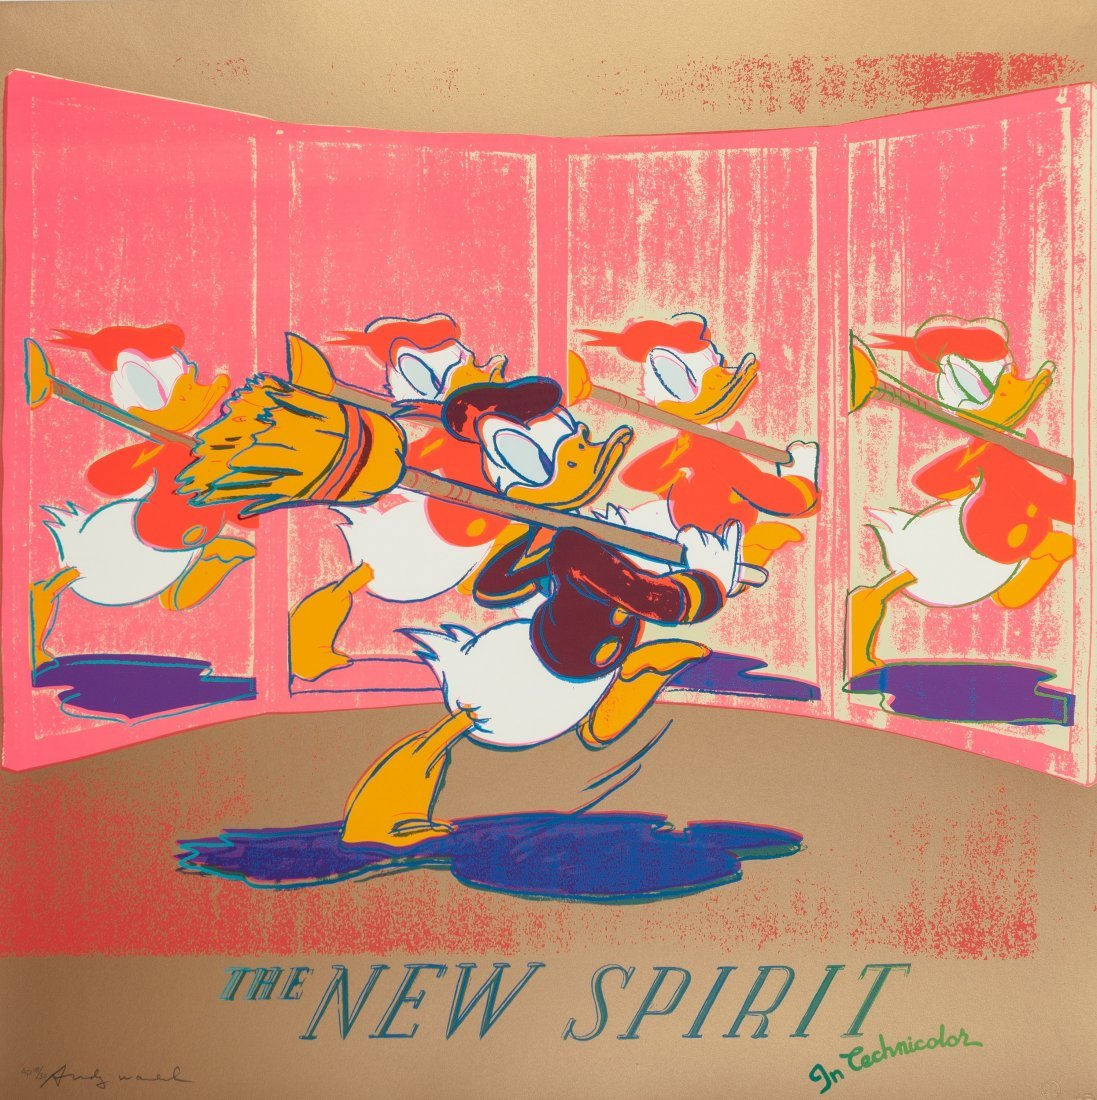 77211: Andy Warhol (1928-1987) The New Spirit (Donald D